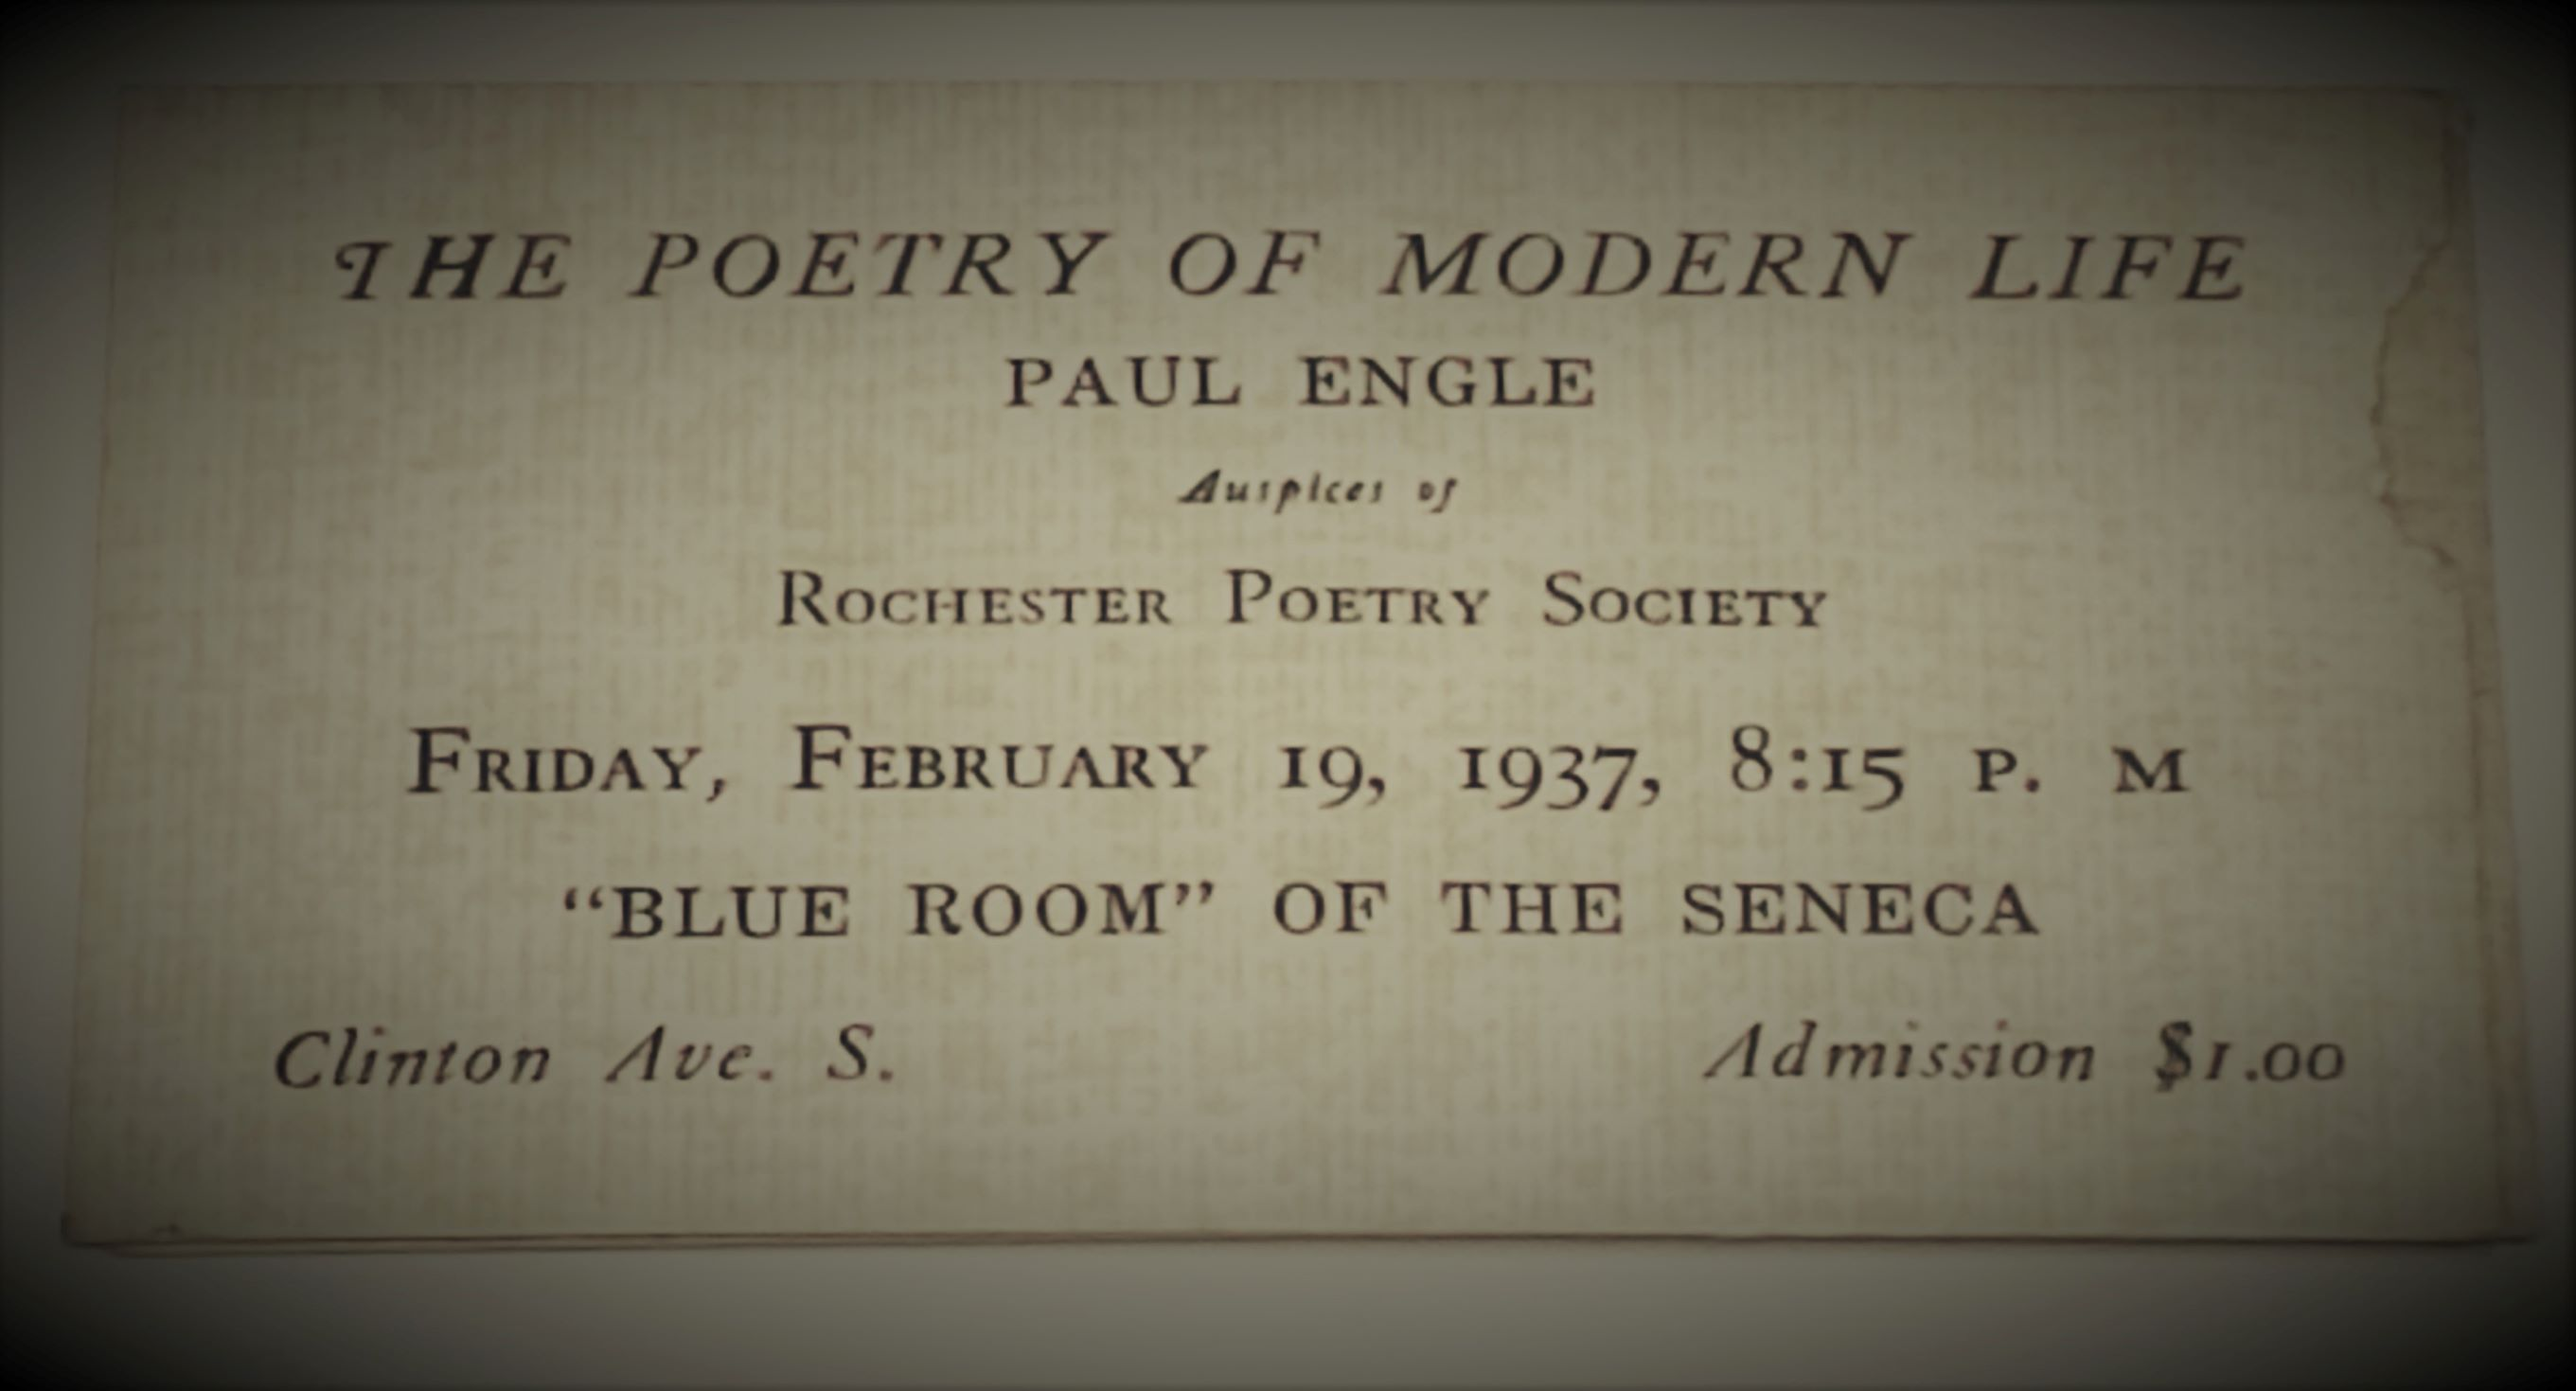 Rochester Poetry Society 1937 event